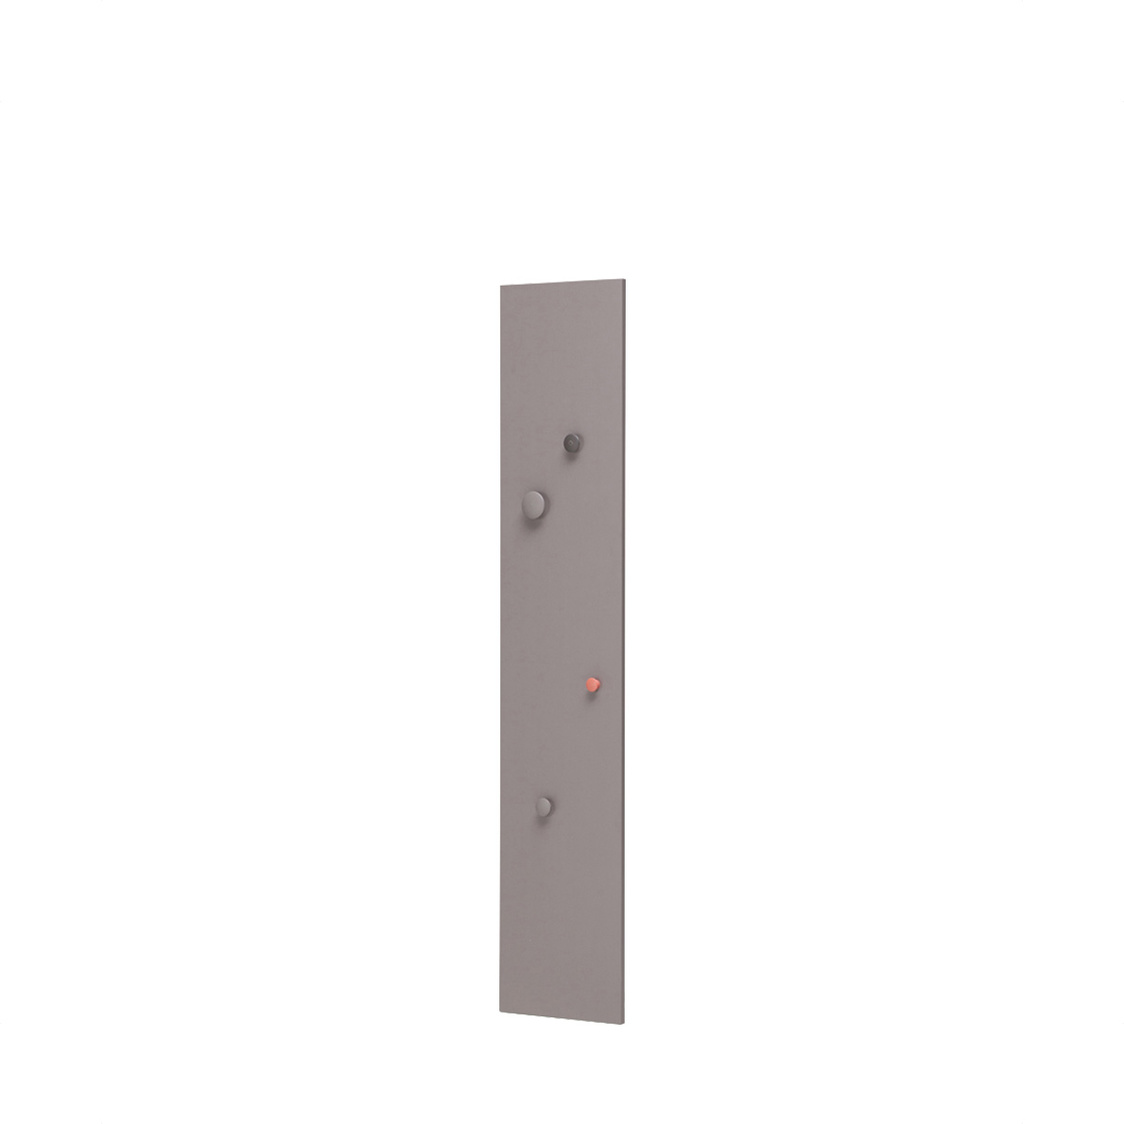 TAILOR 400W Coordination Door L HW3044L-GU